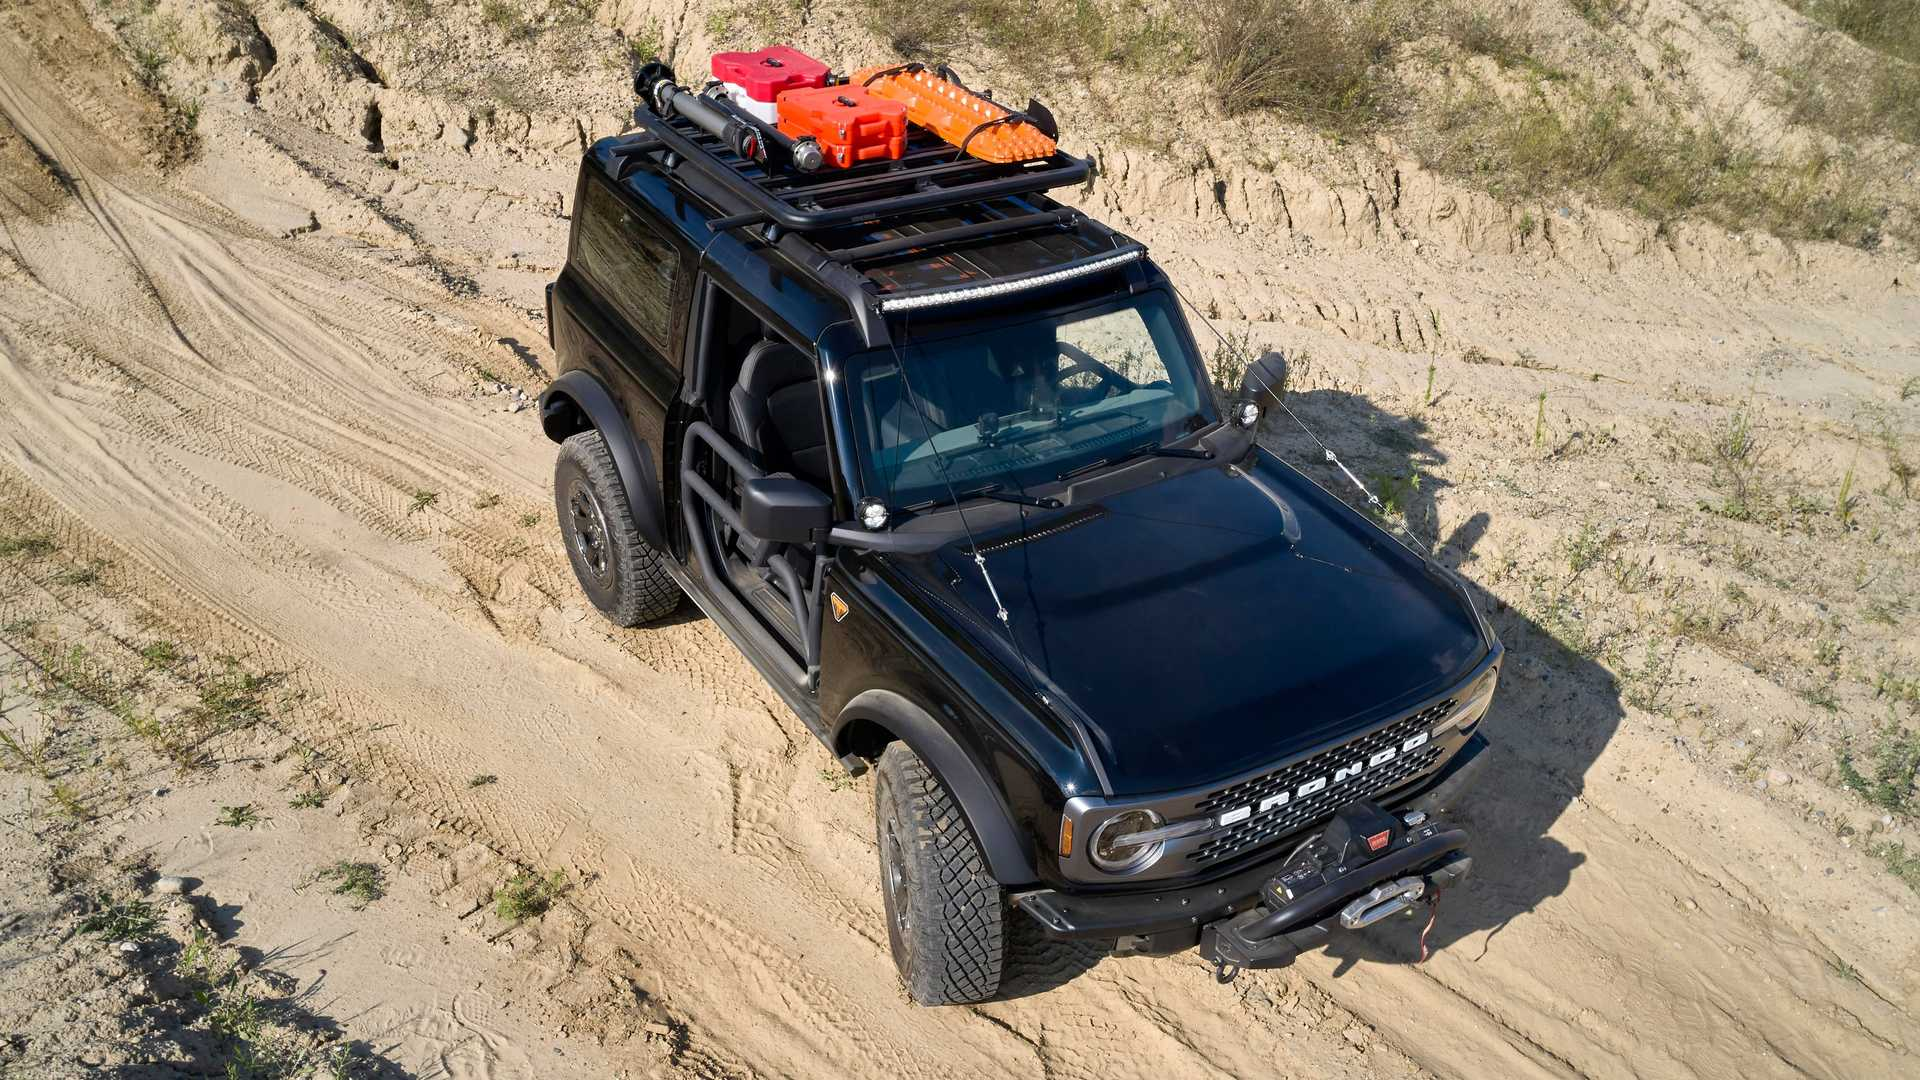 Ford Bronco Factory Backed Accessories May Debut In Dedicated Event